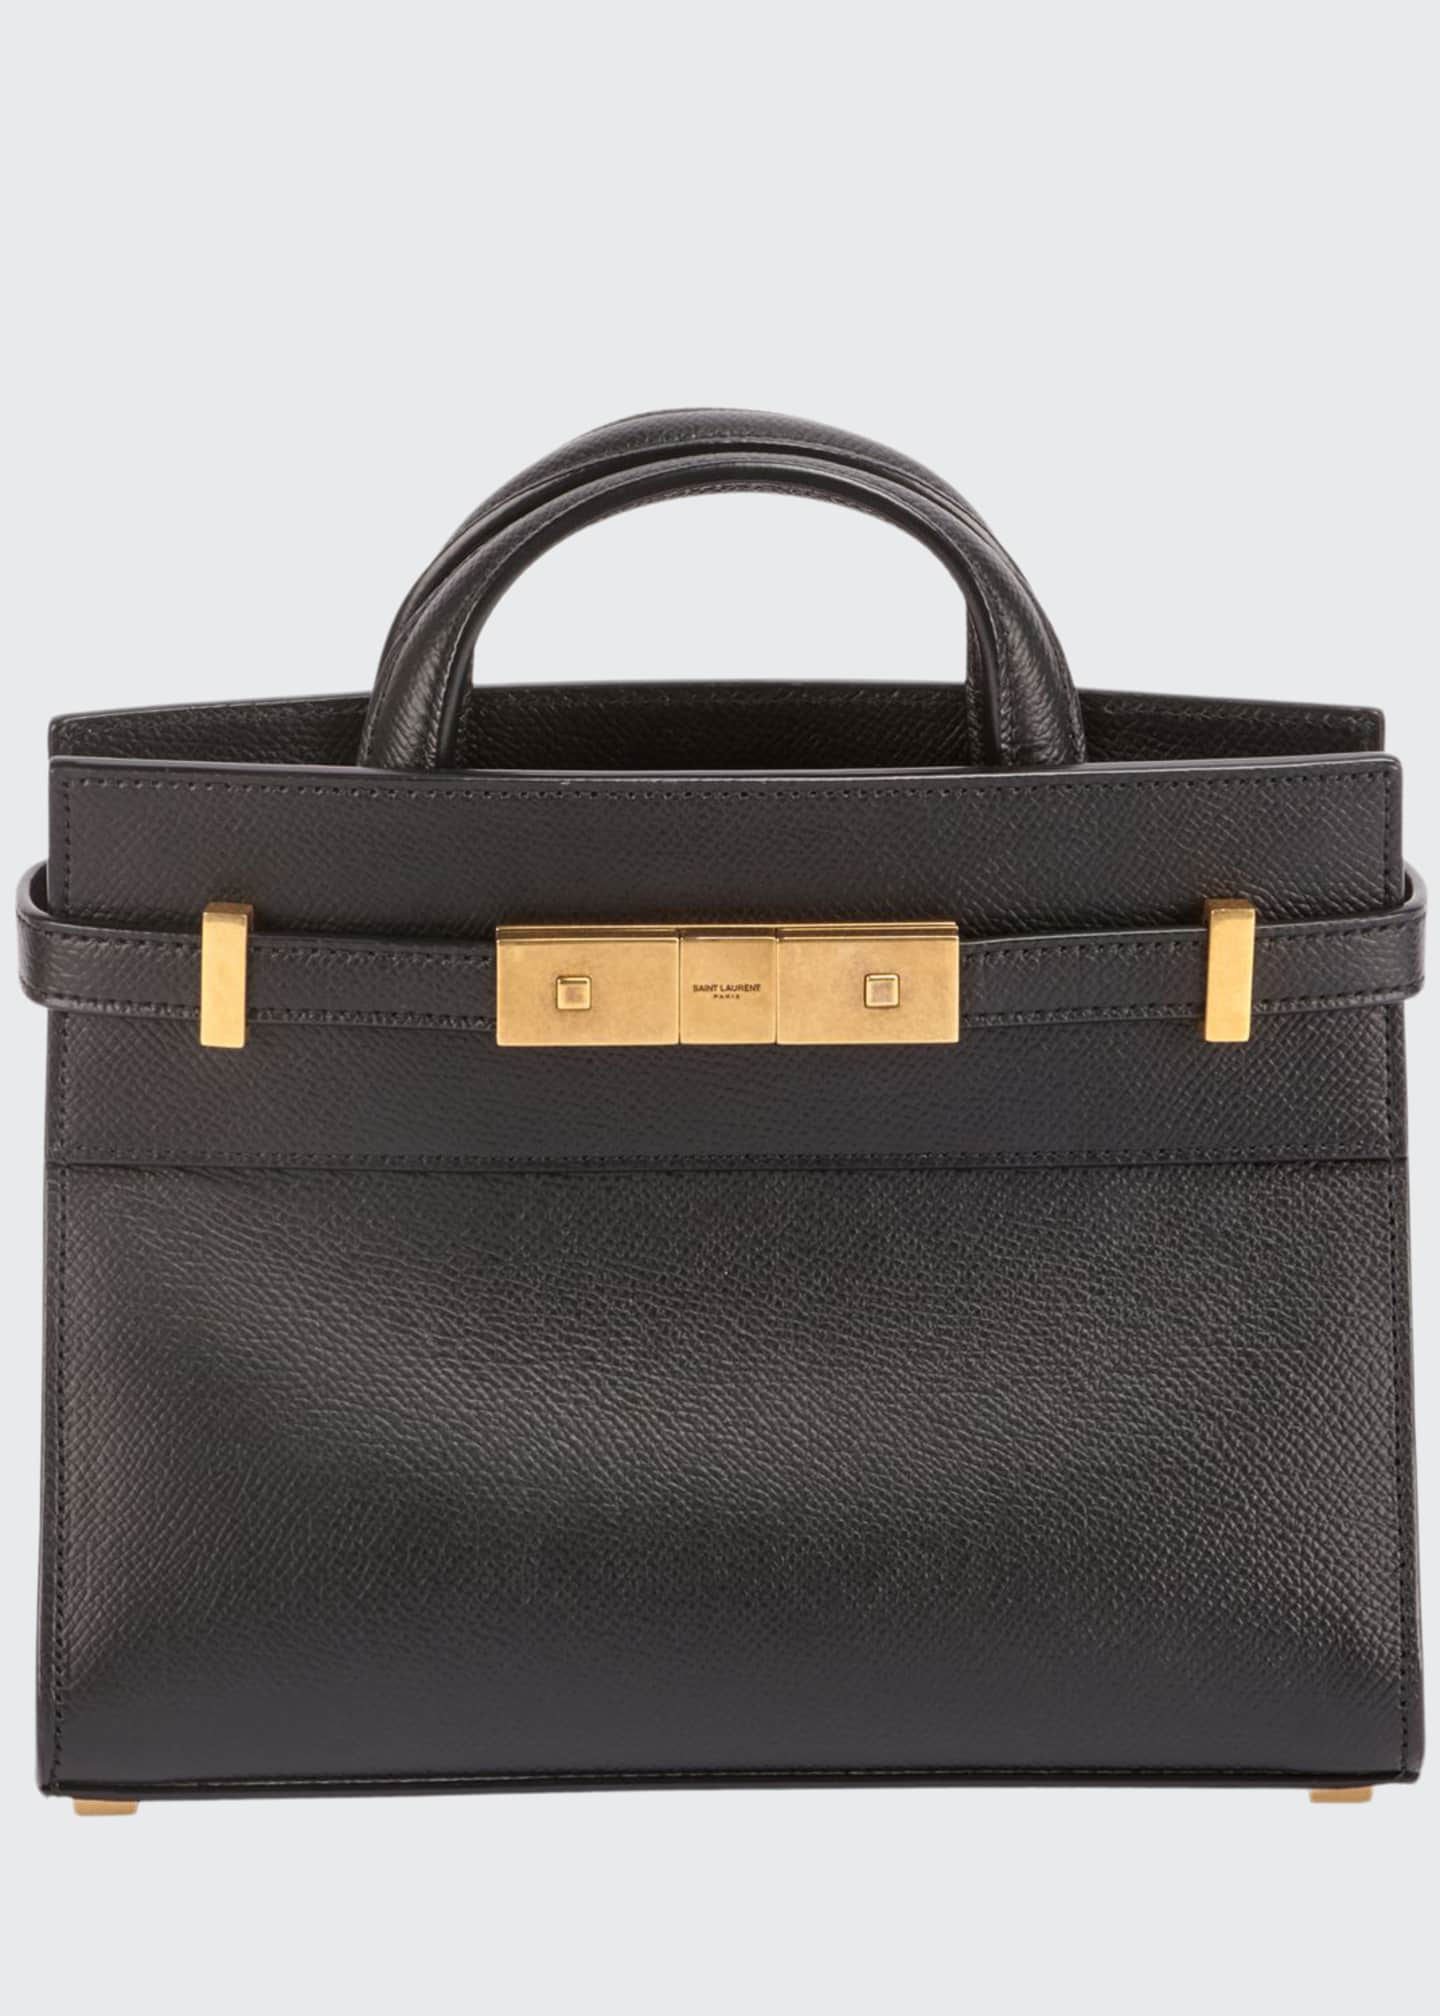 Saint Laurent Manhattan Belted Leather Tote Bag